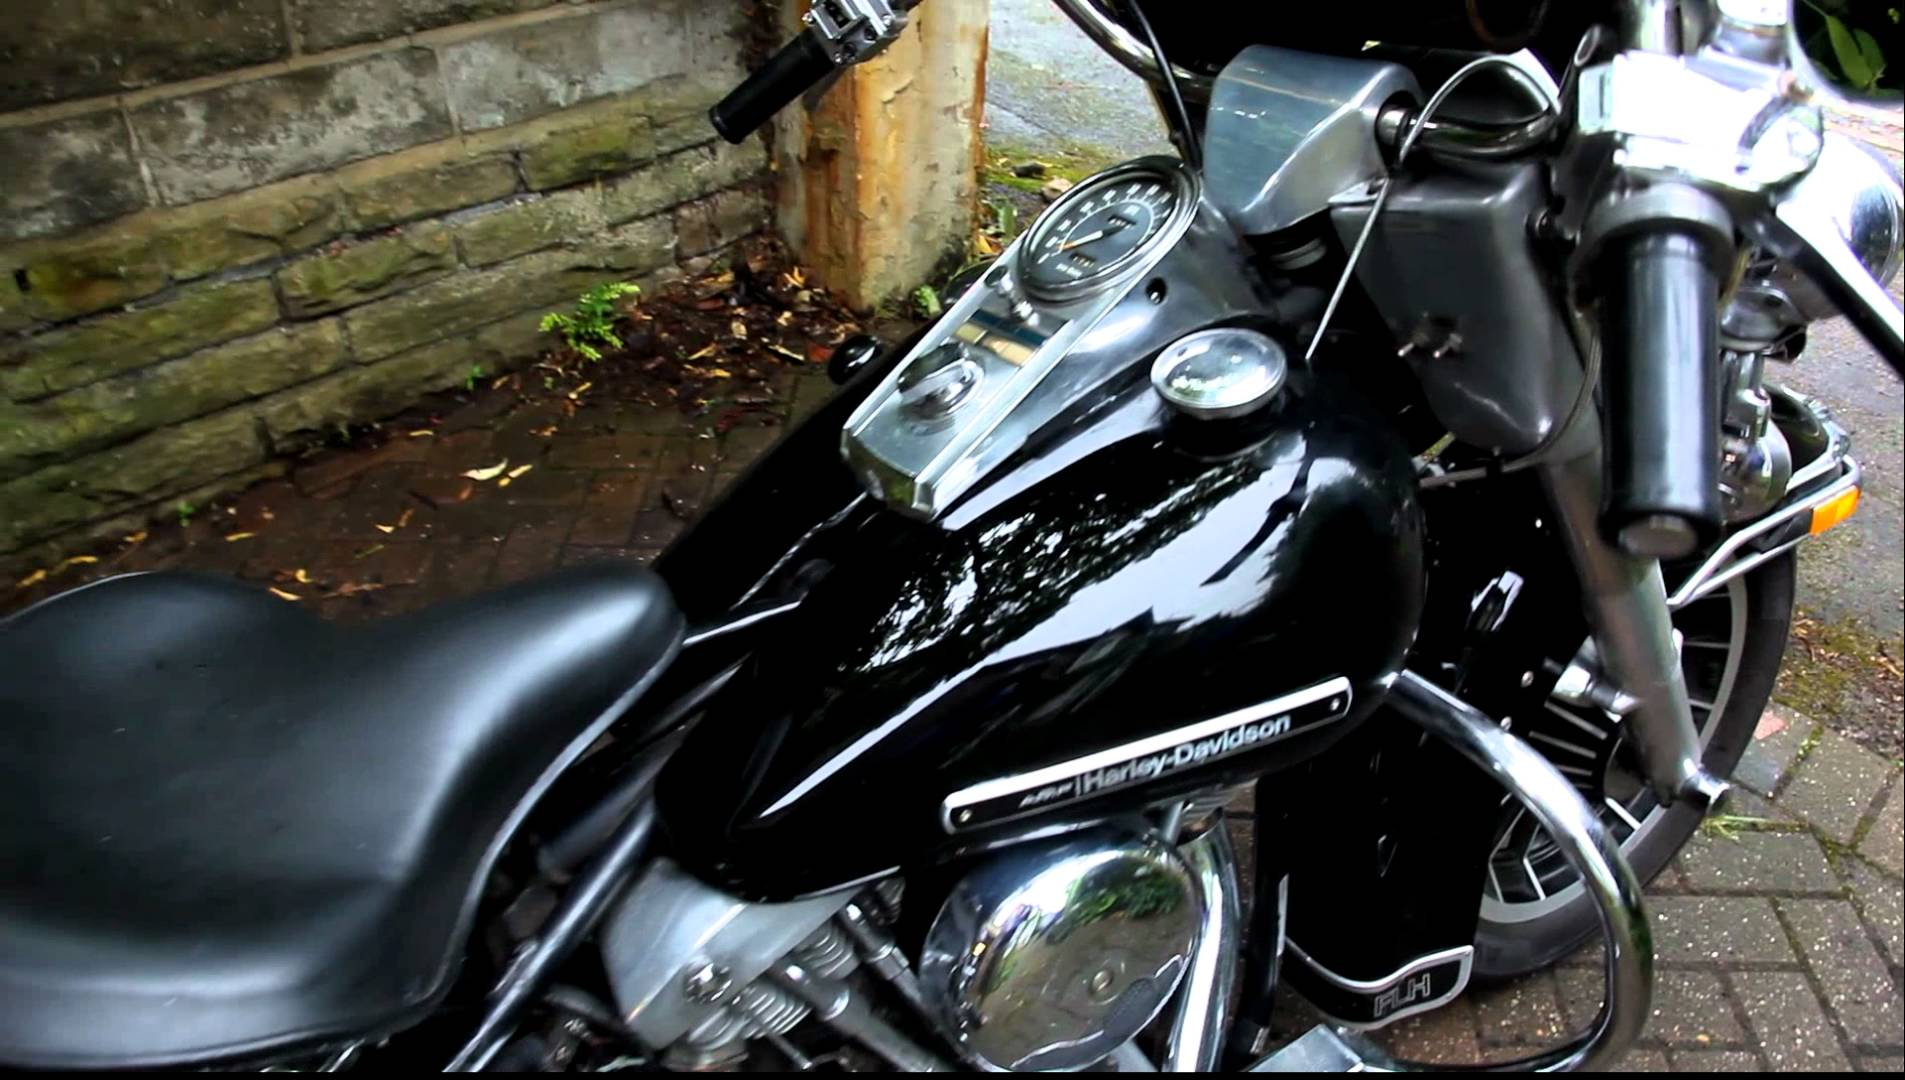 Harley-Davidson FLHC 1340 EIectra Glide Classic (with sidecar) 1981 #10